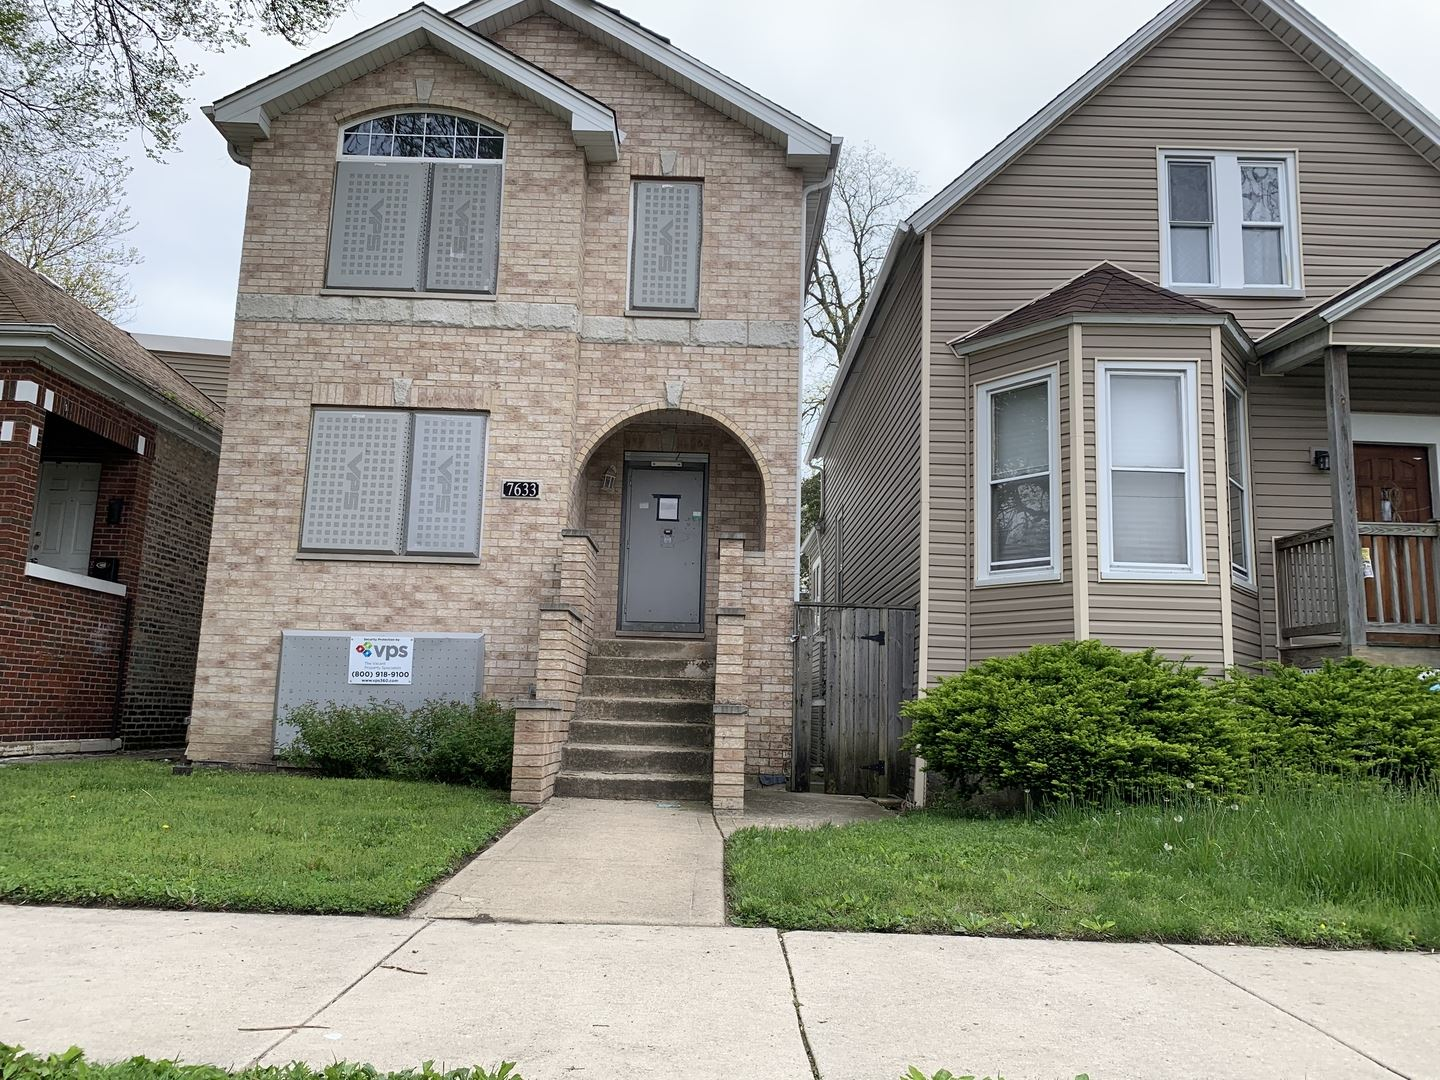 7633 S Maryland Avenue, Chicago, IL 60619 - #: 10751520